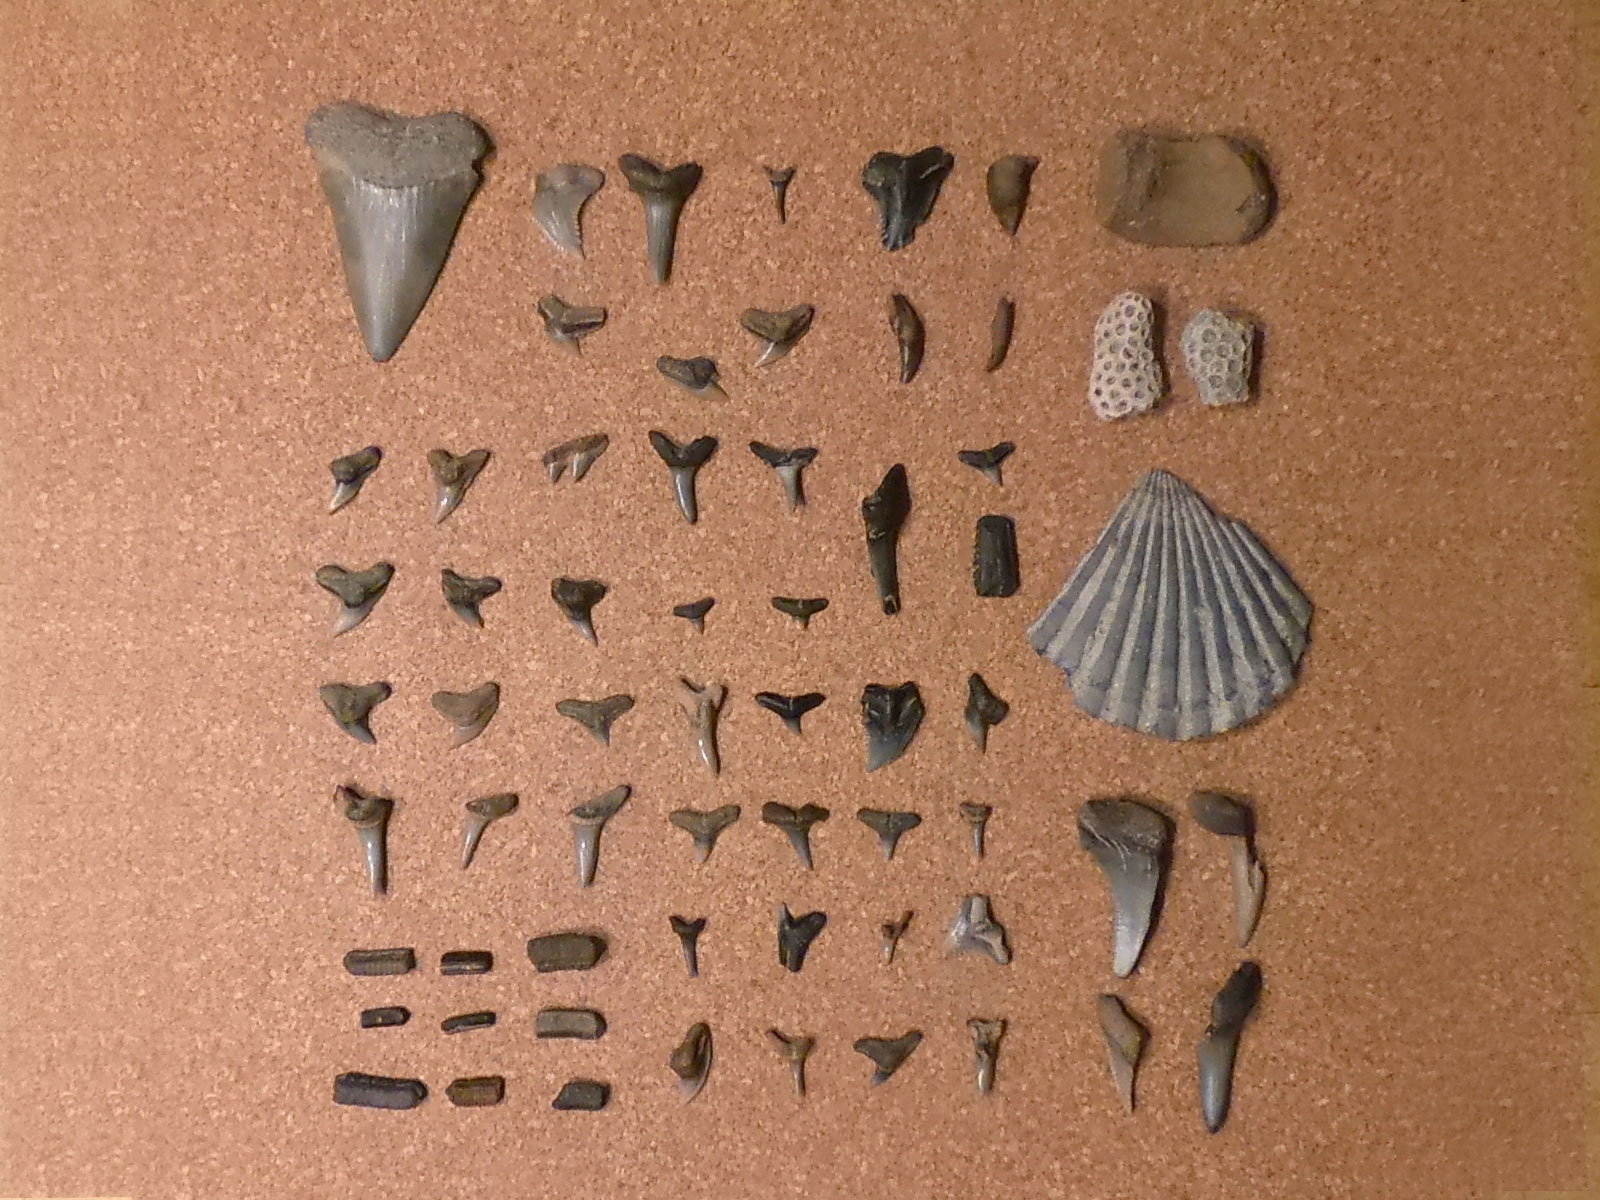 Collection of fossilized shark teeth, skate grinding plate, dolphin teeth, seashell, coral, vertebrae bones from Aurora, NC